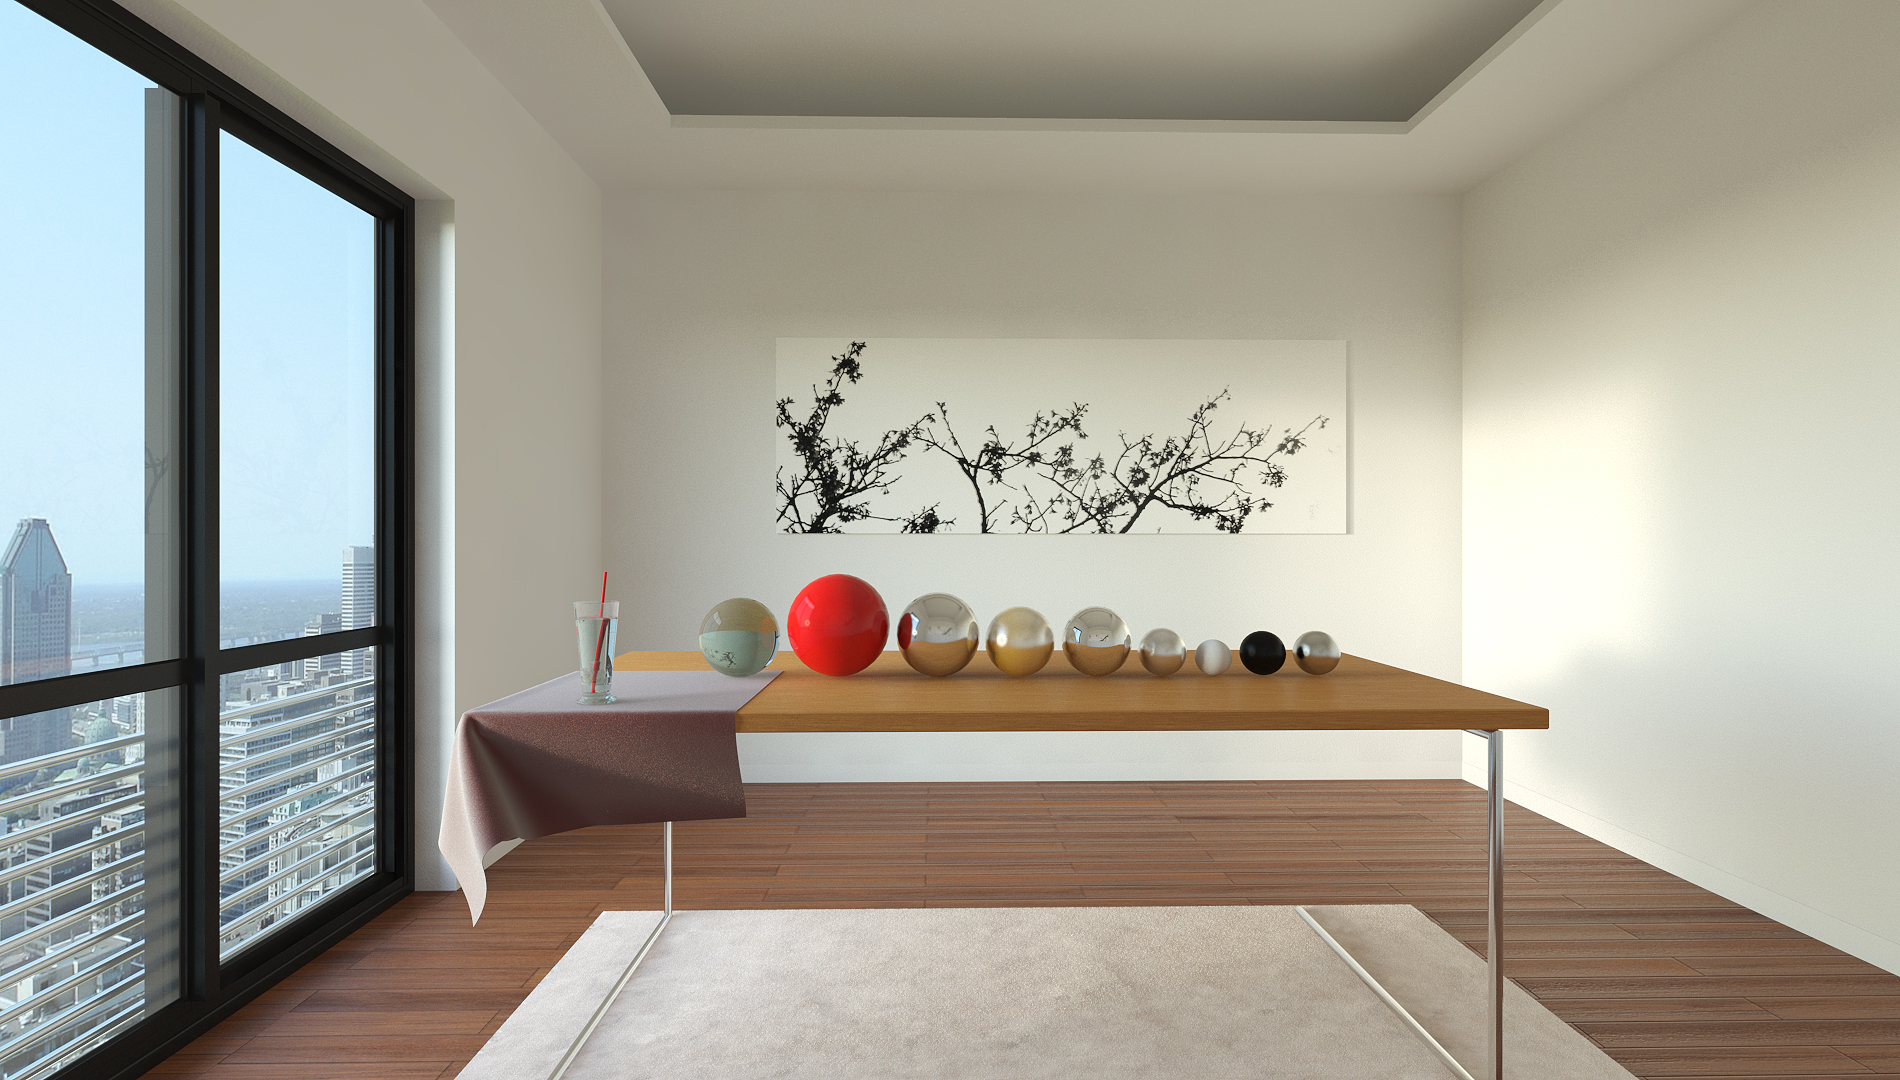 Vray interior render setup by visuarch 3docean for Vray interior